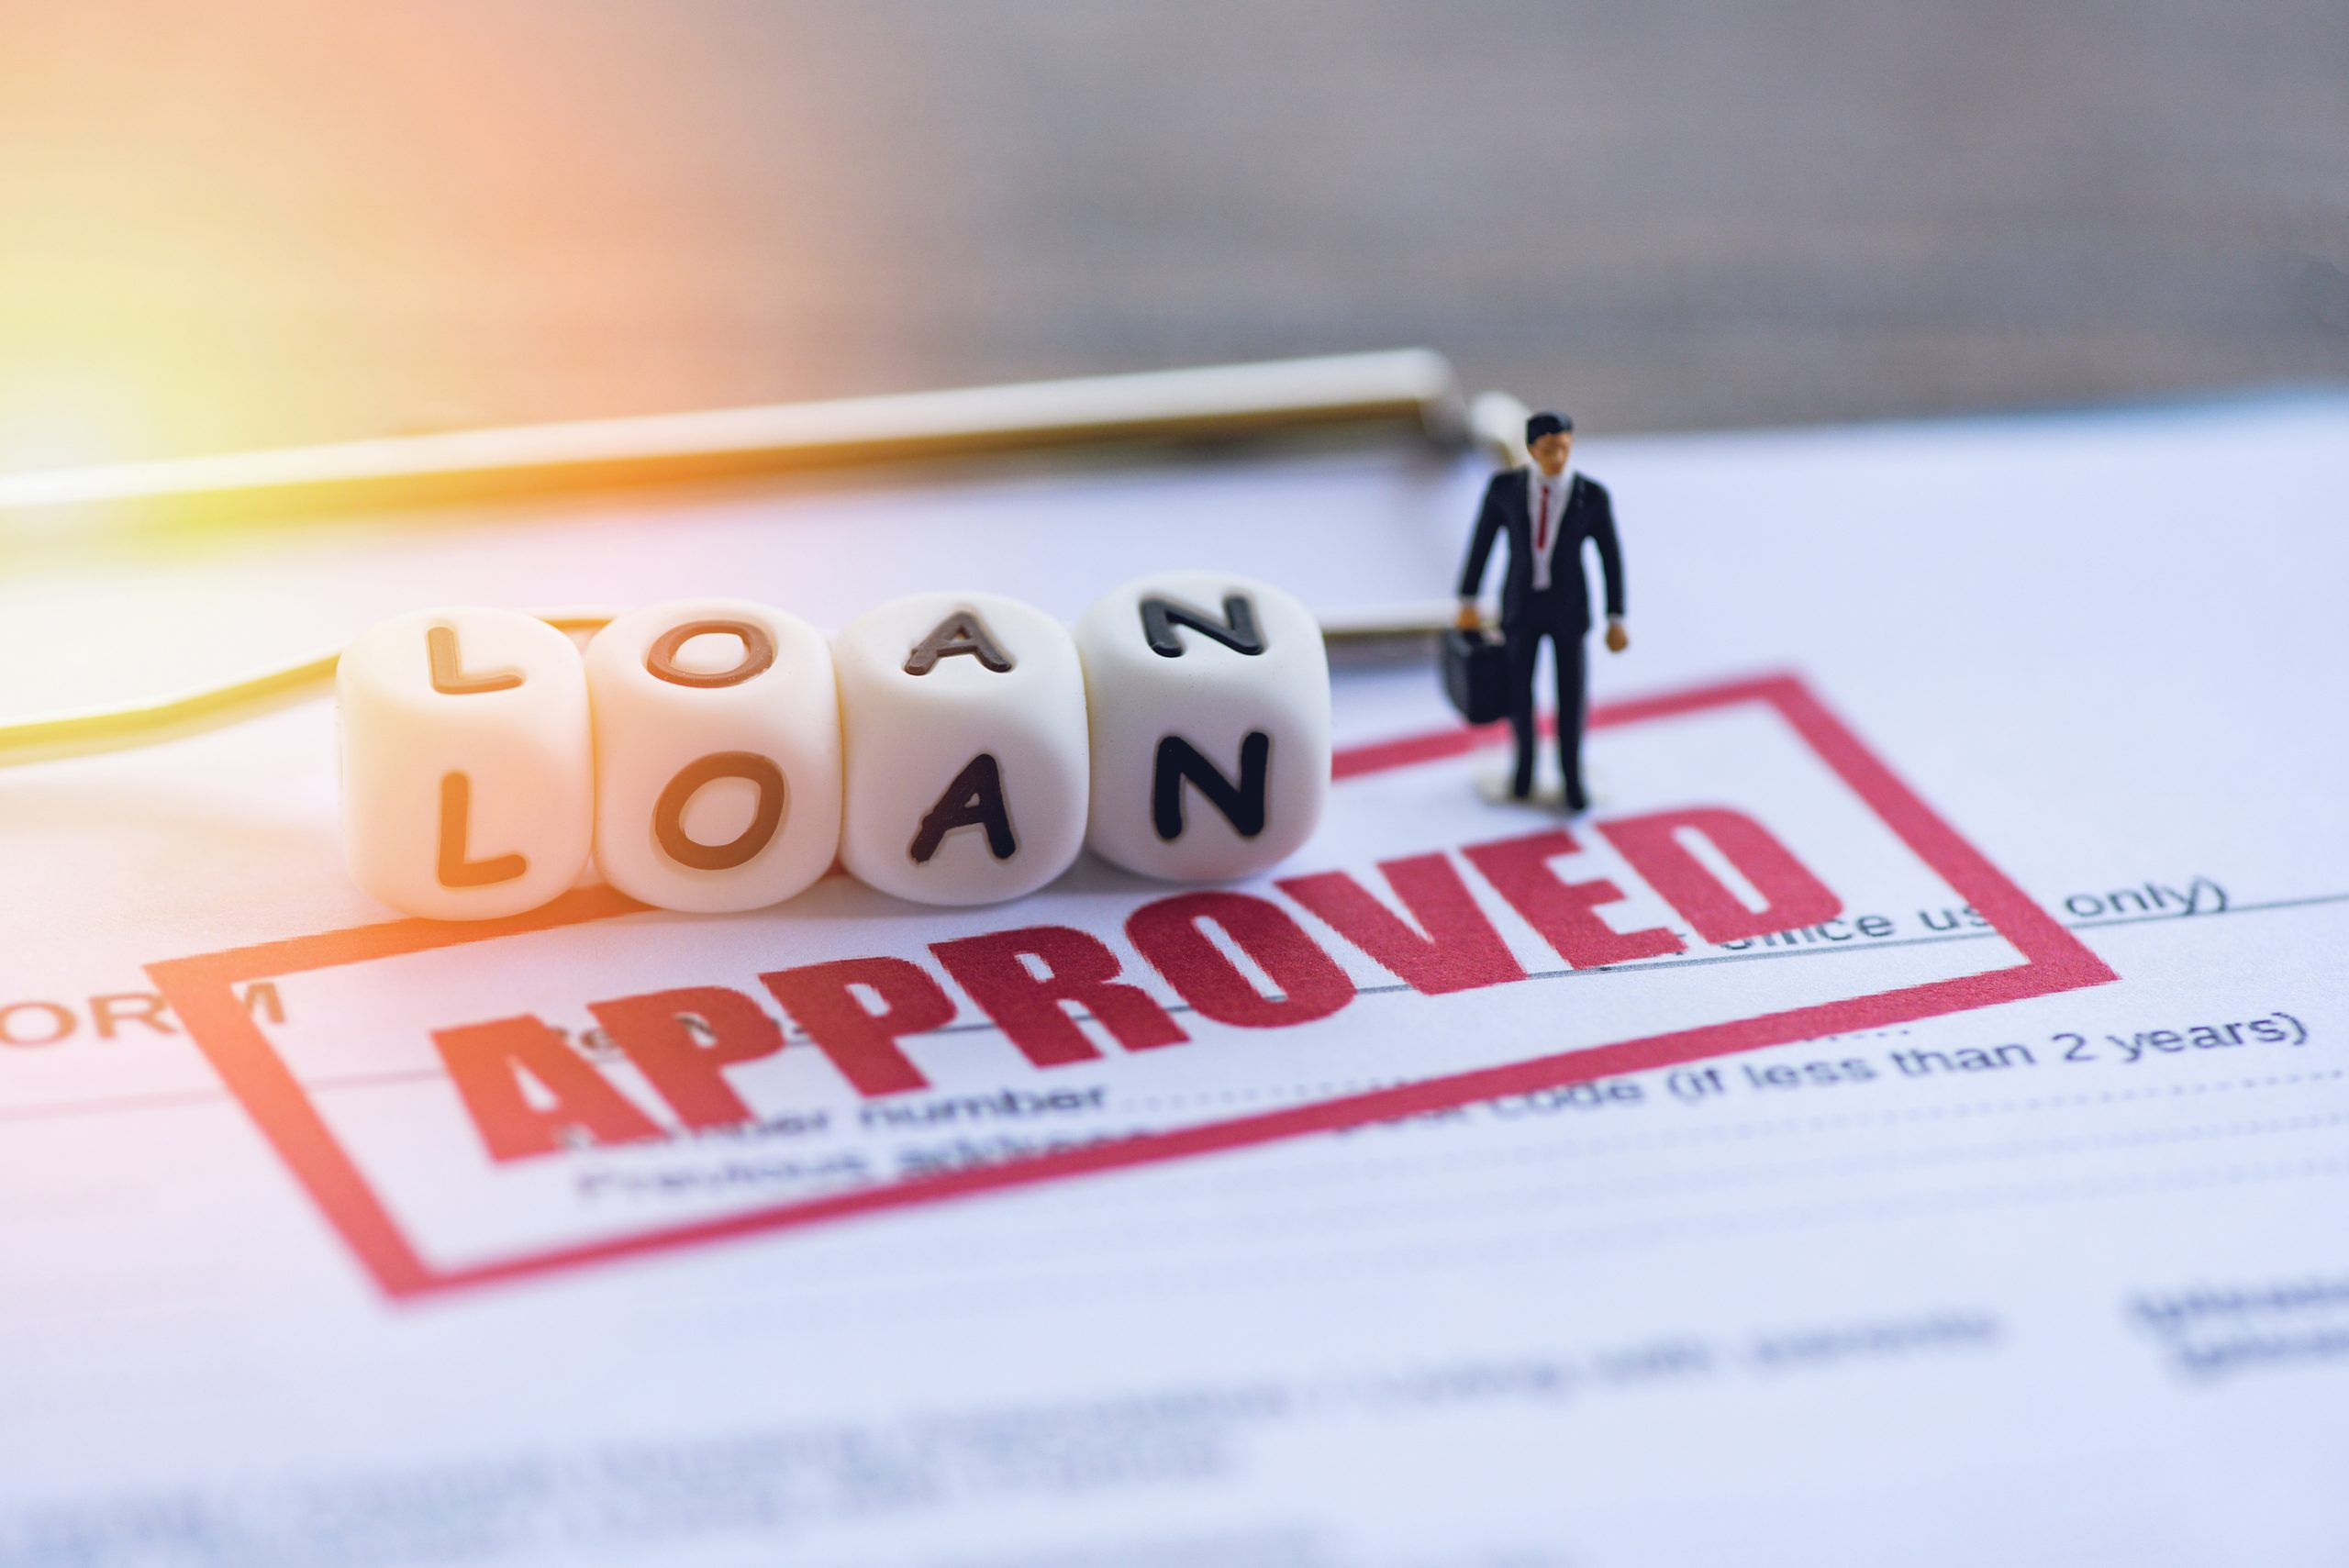 Loan approval / Businessman financial Standing on loan application form for lender and borrower for help investment bank estate concept